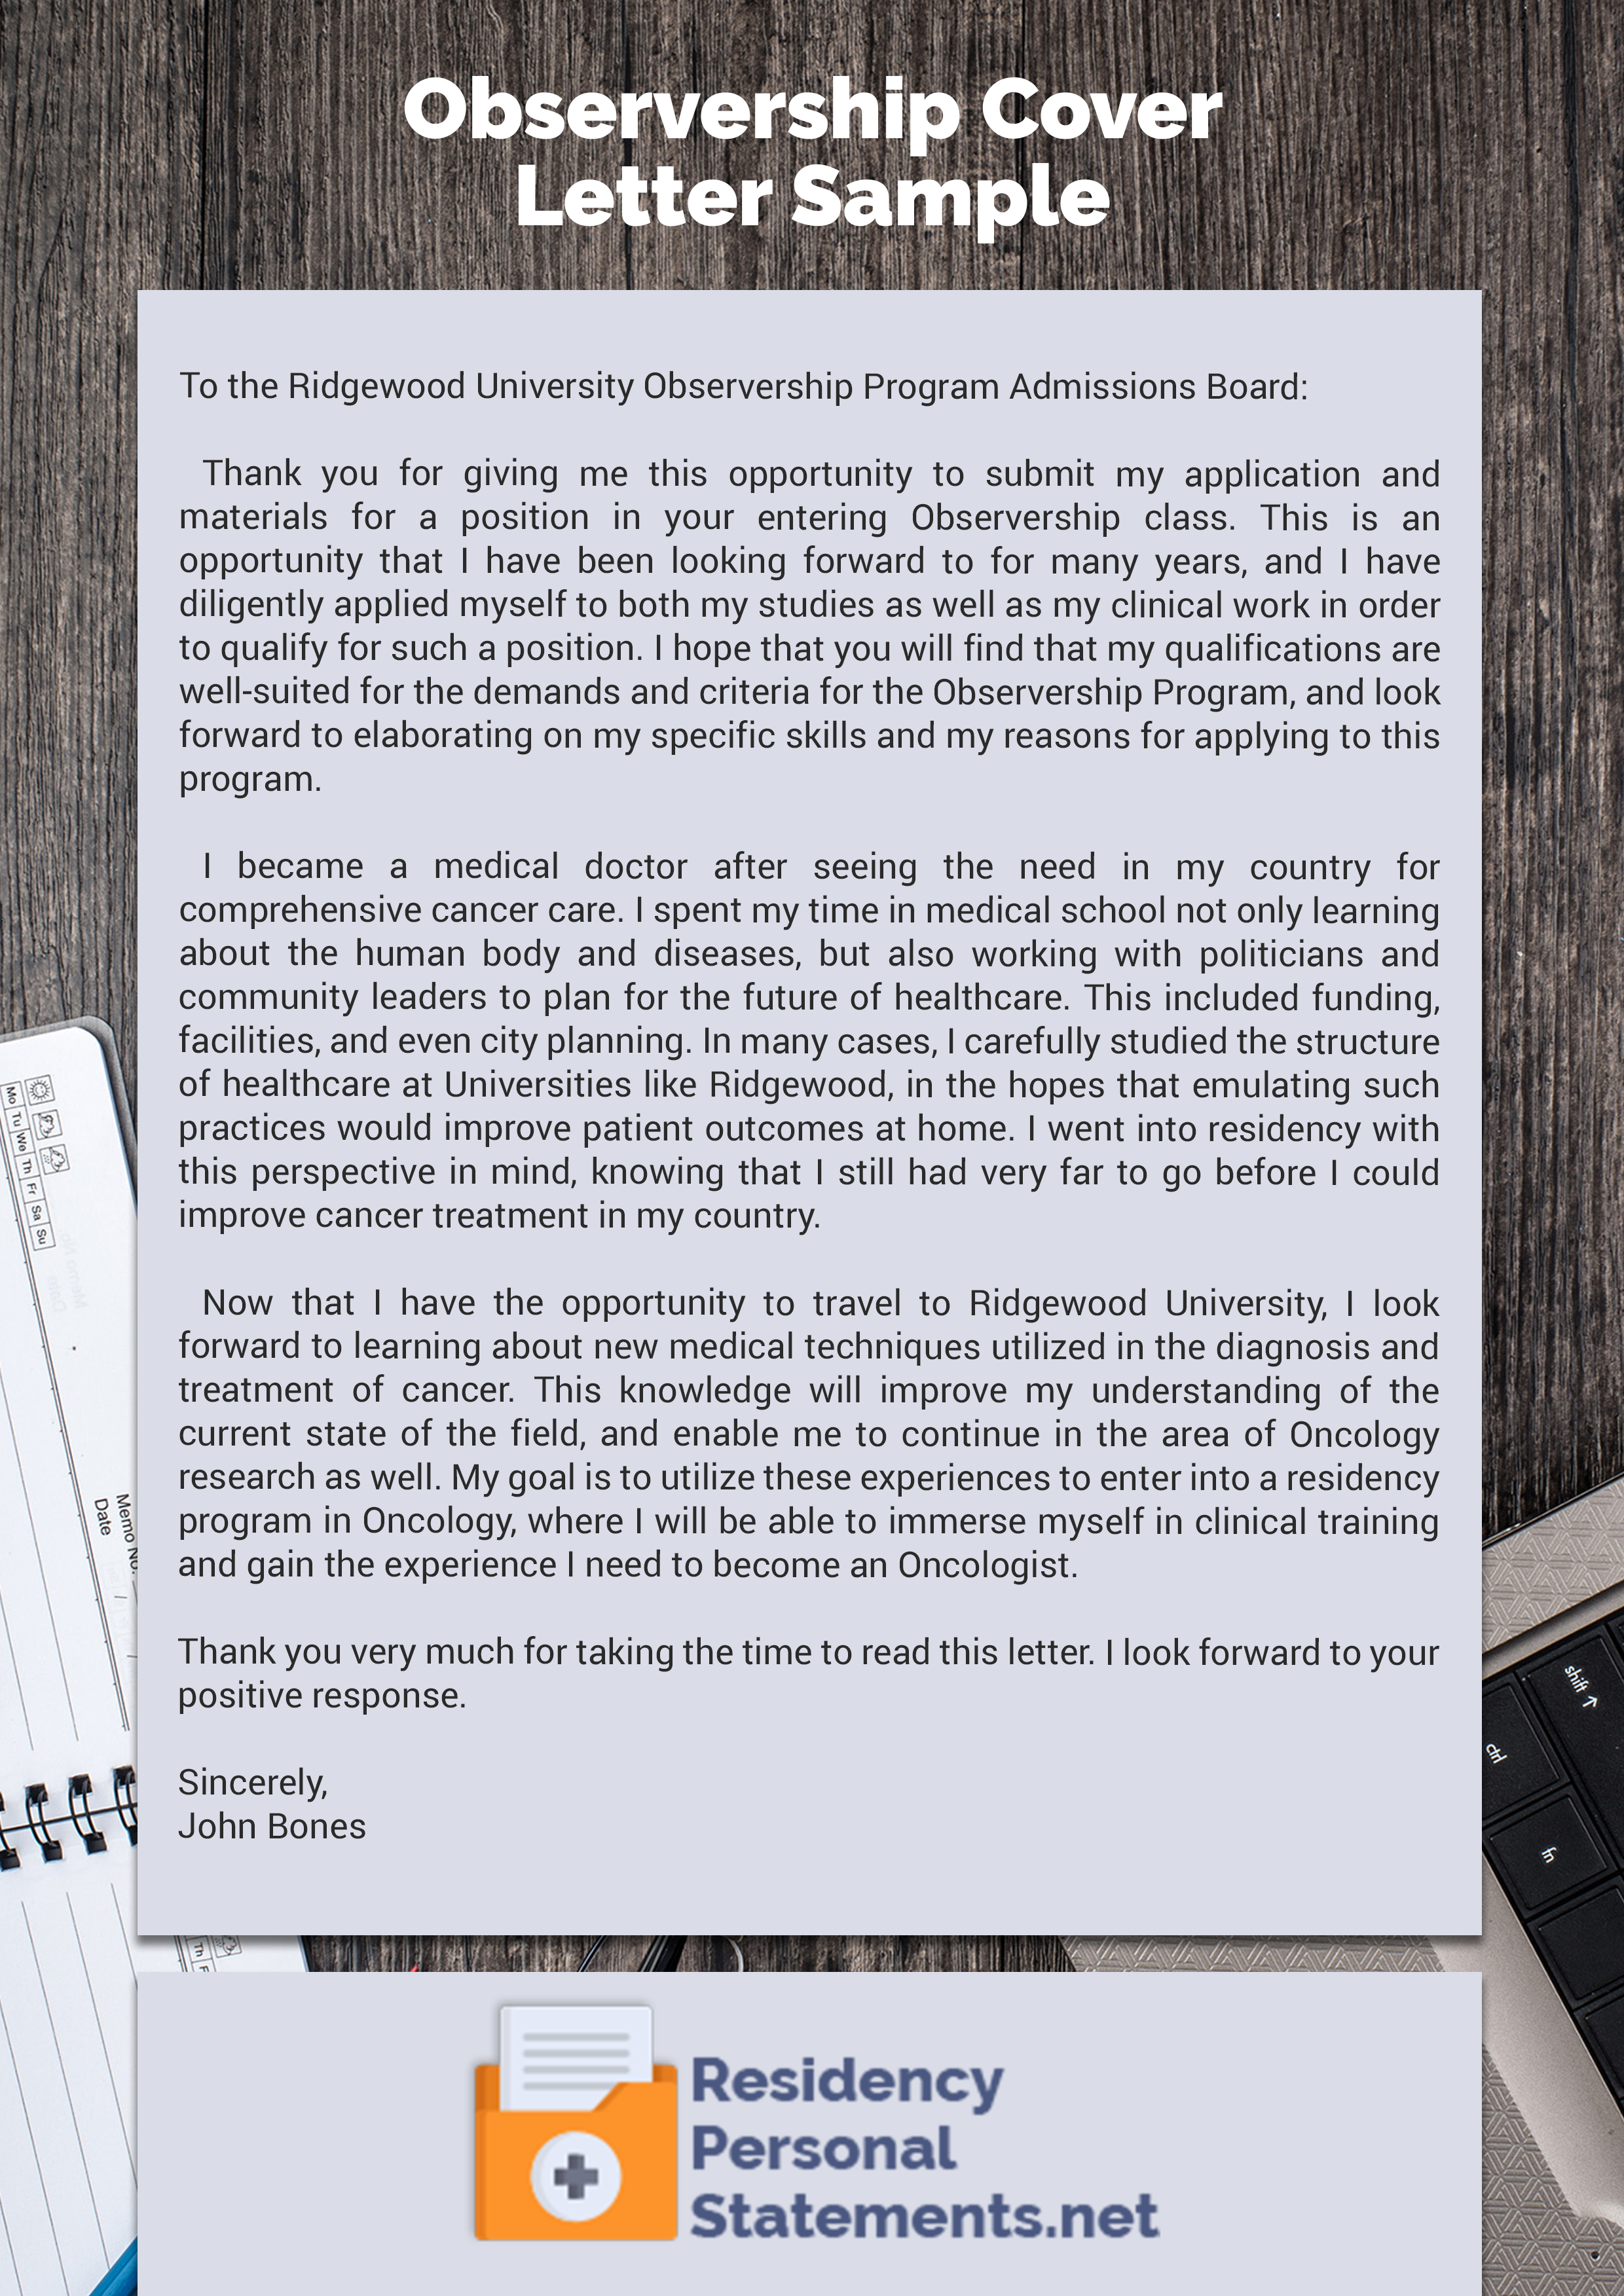 Medical Observership Cover Letter Sample Which Will Help You Write A Convincing Cover Letter Get More Samples Her Letter Sample Cover Letter Sample Lettering